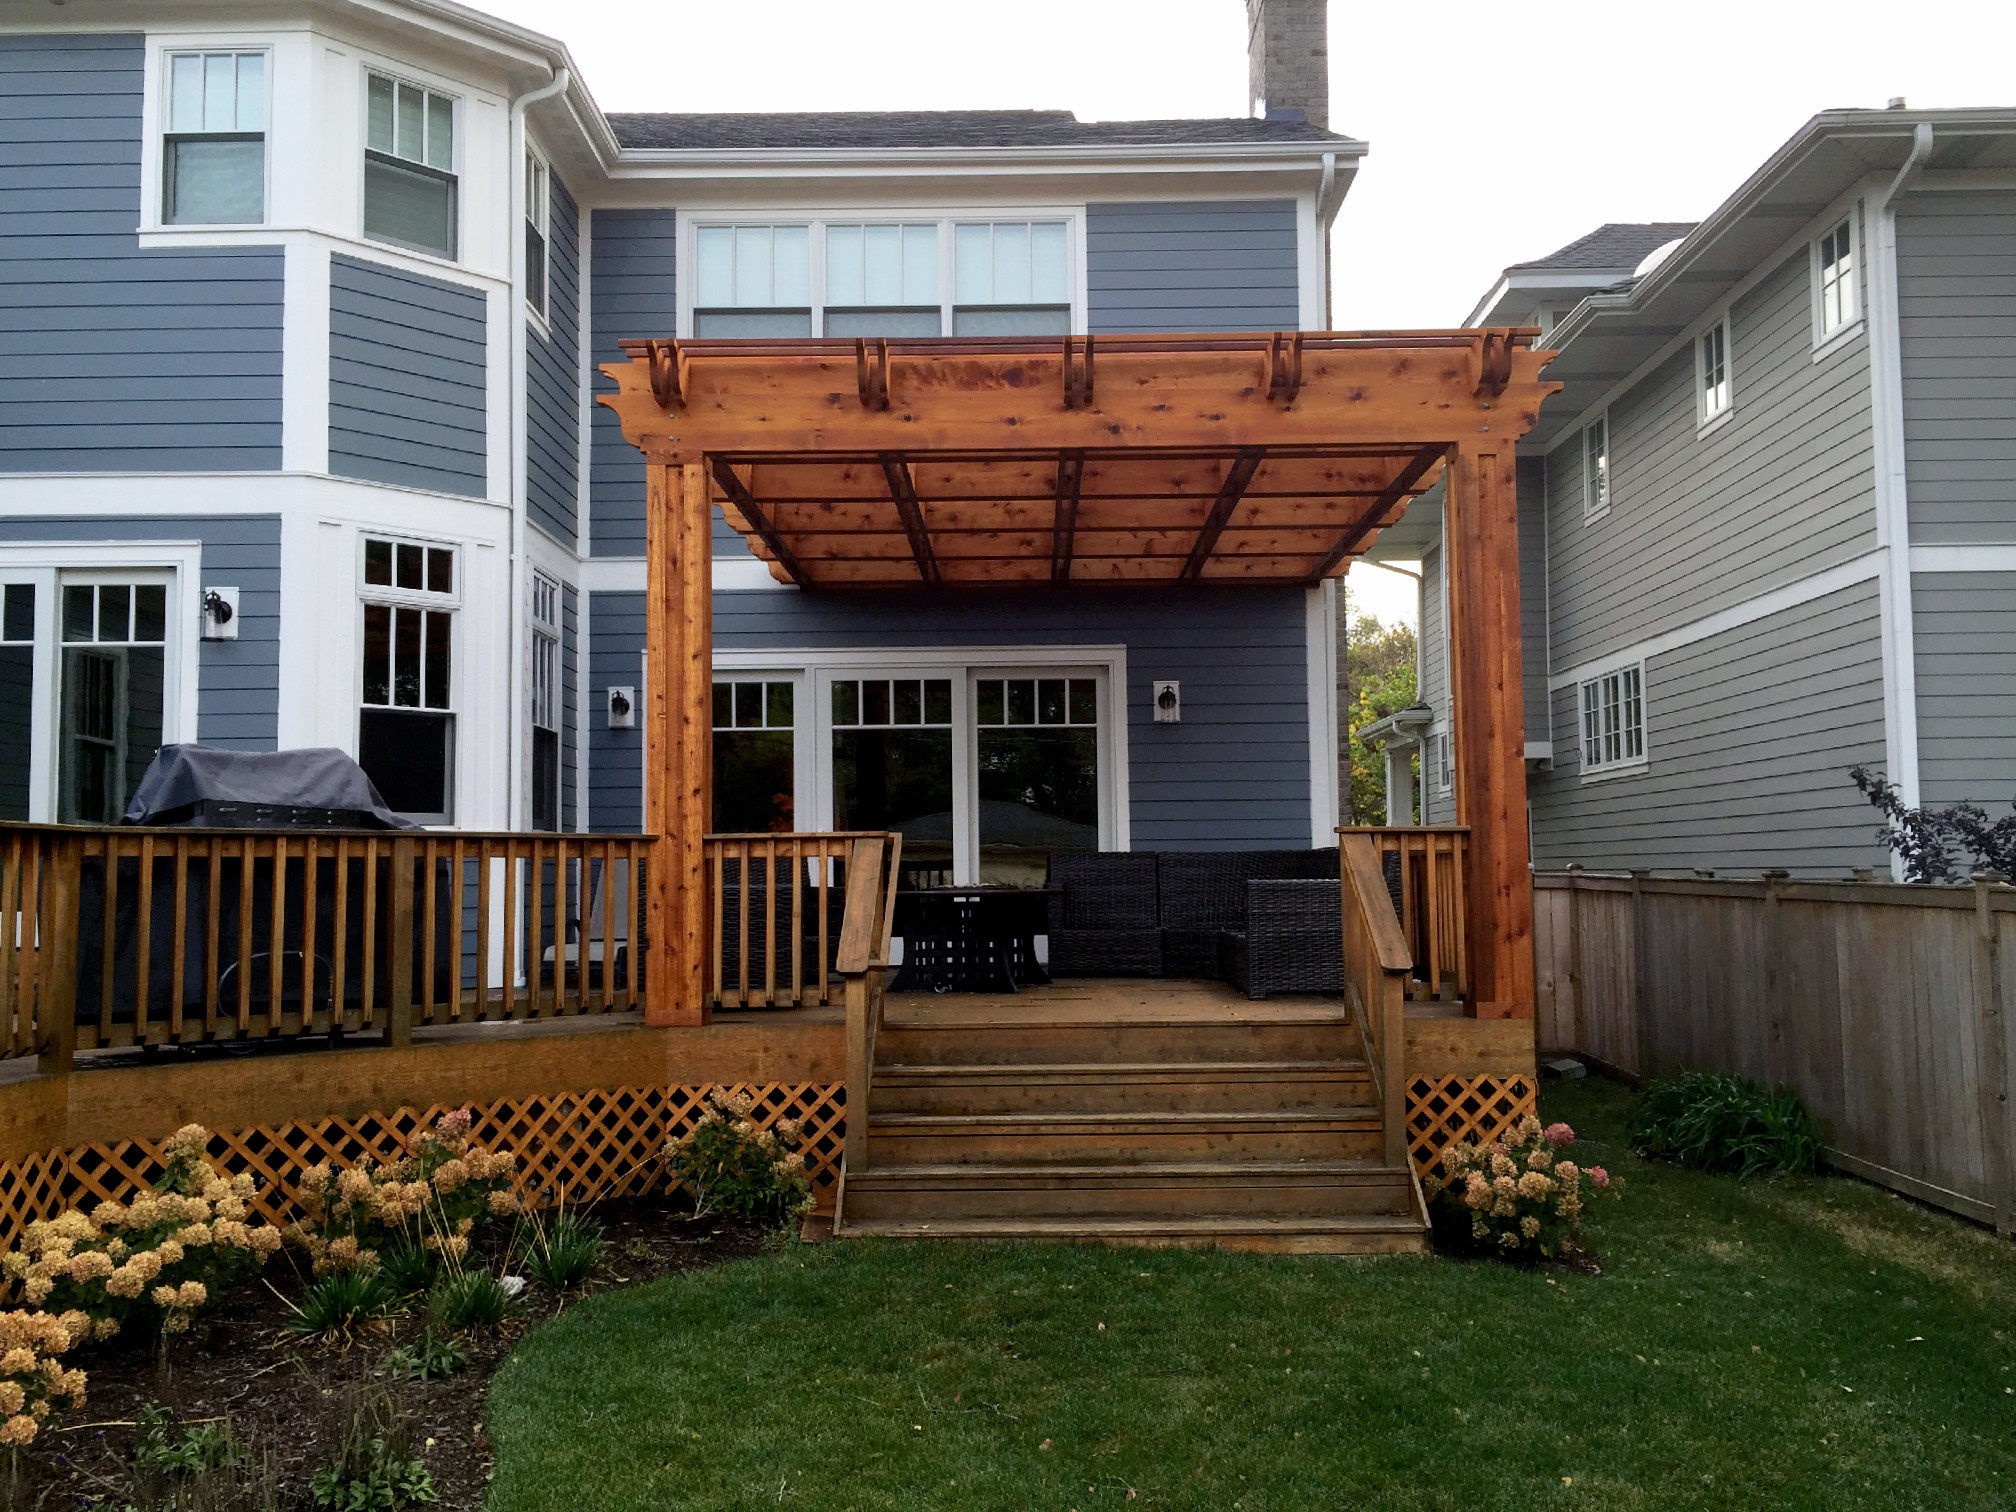 st louis mo pergola deck designs by archadeck st louis decks screened porches pergolas by. Black Bedroom Furniture Sets. Home Design Ideas